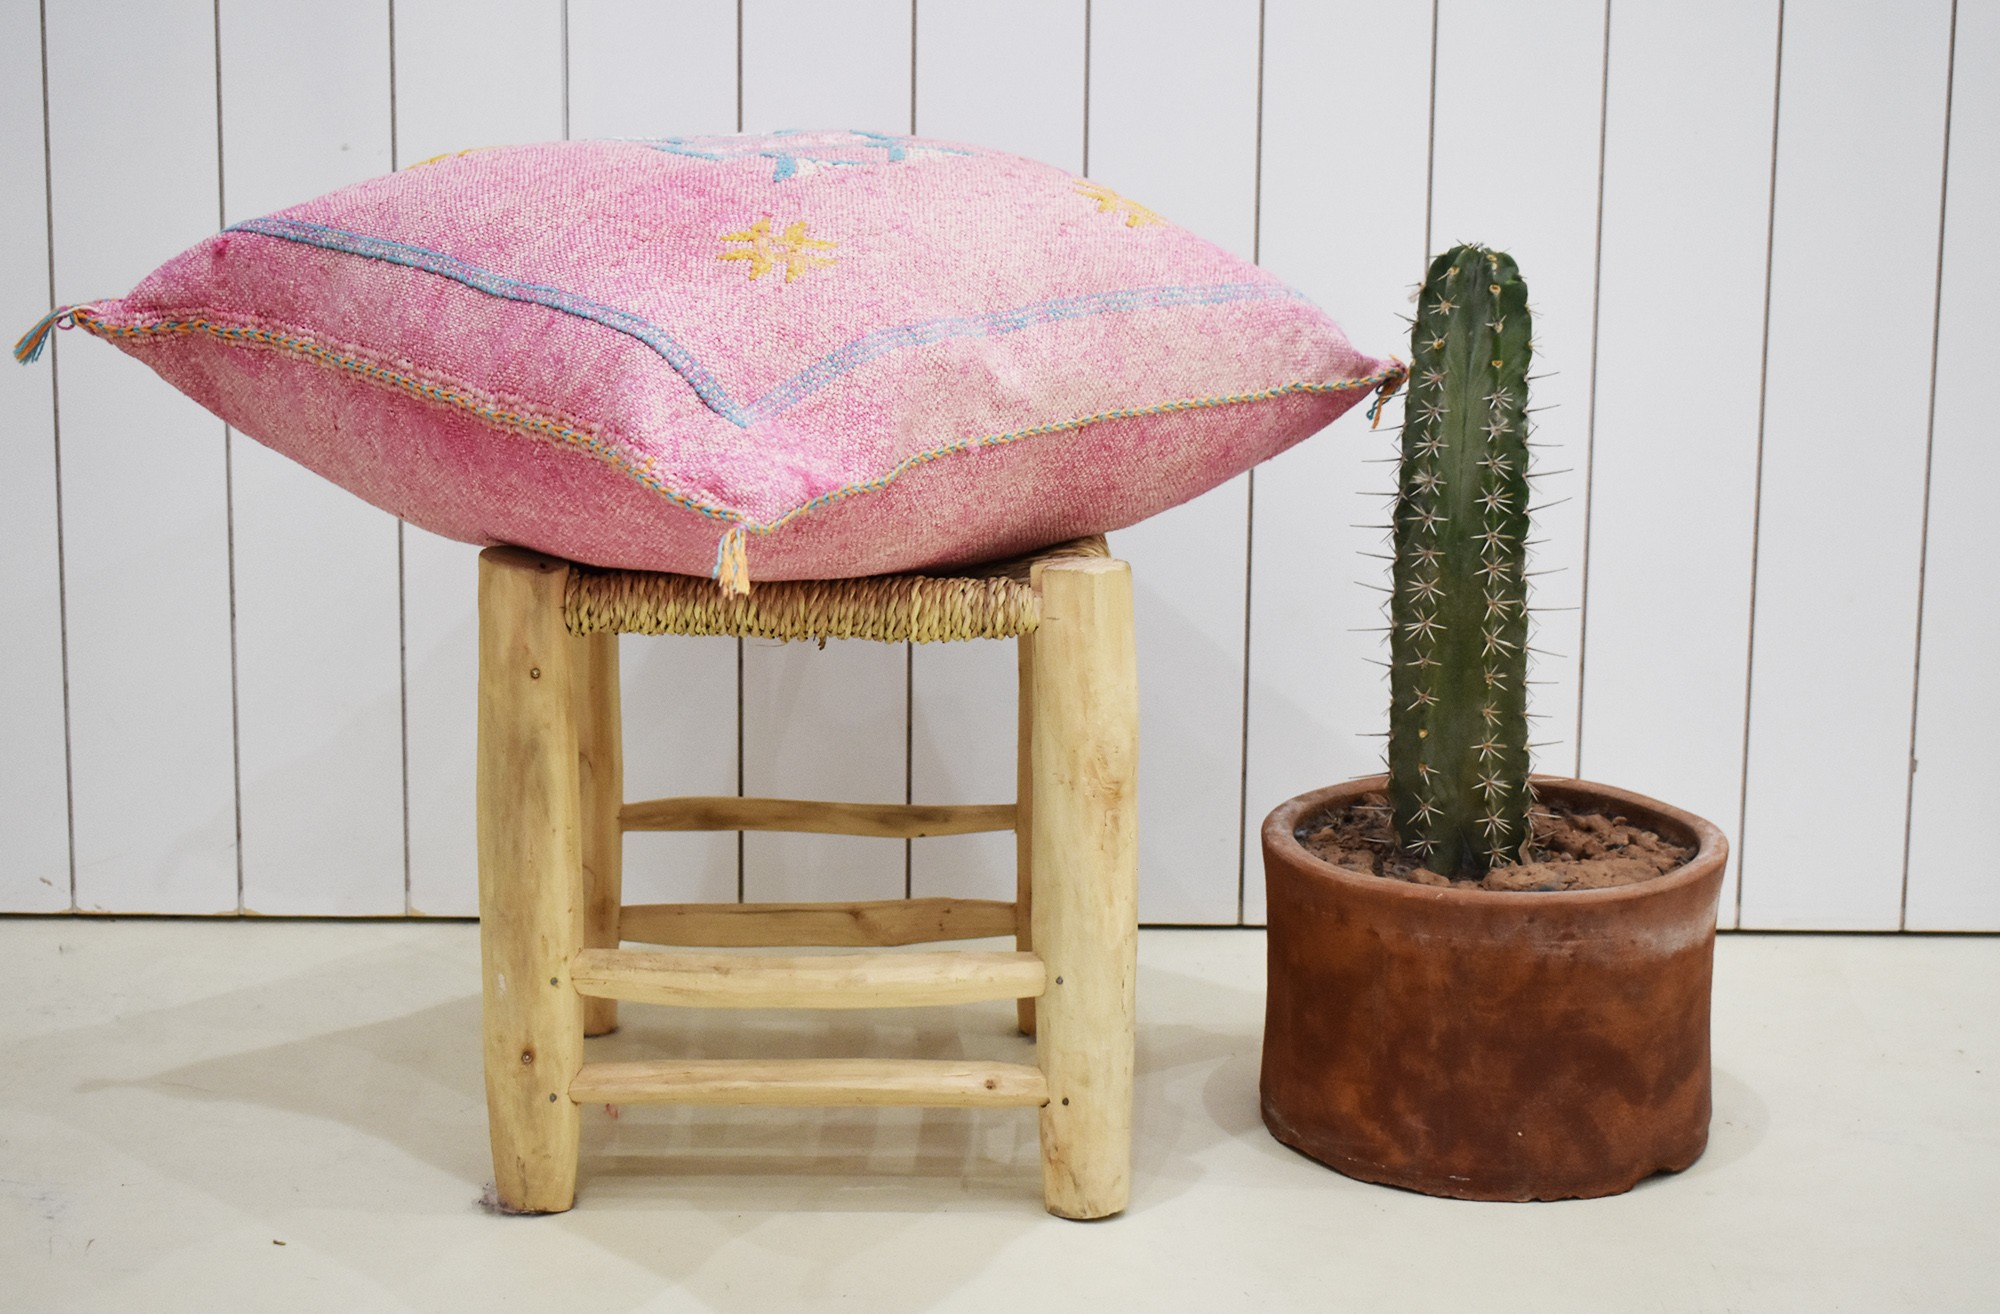 Faded pink Berber cushion cover